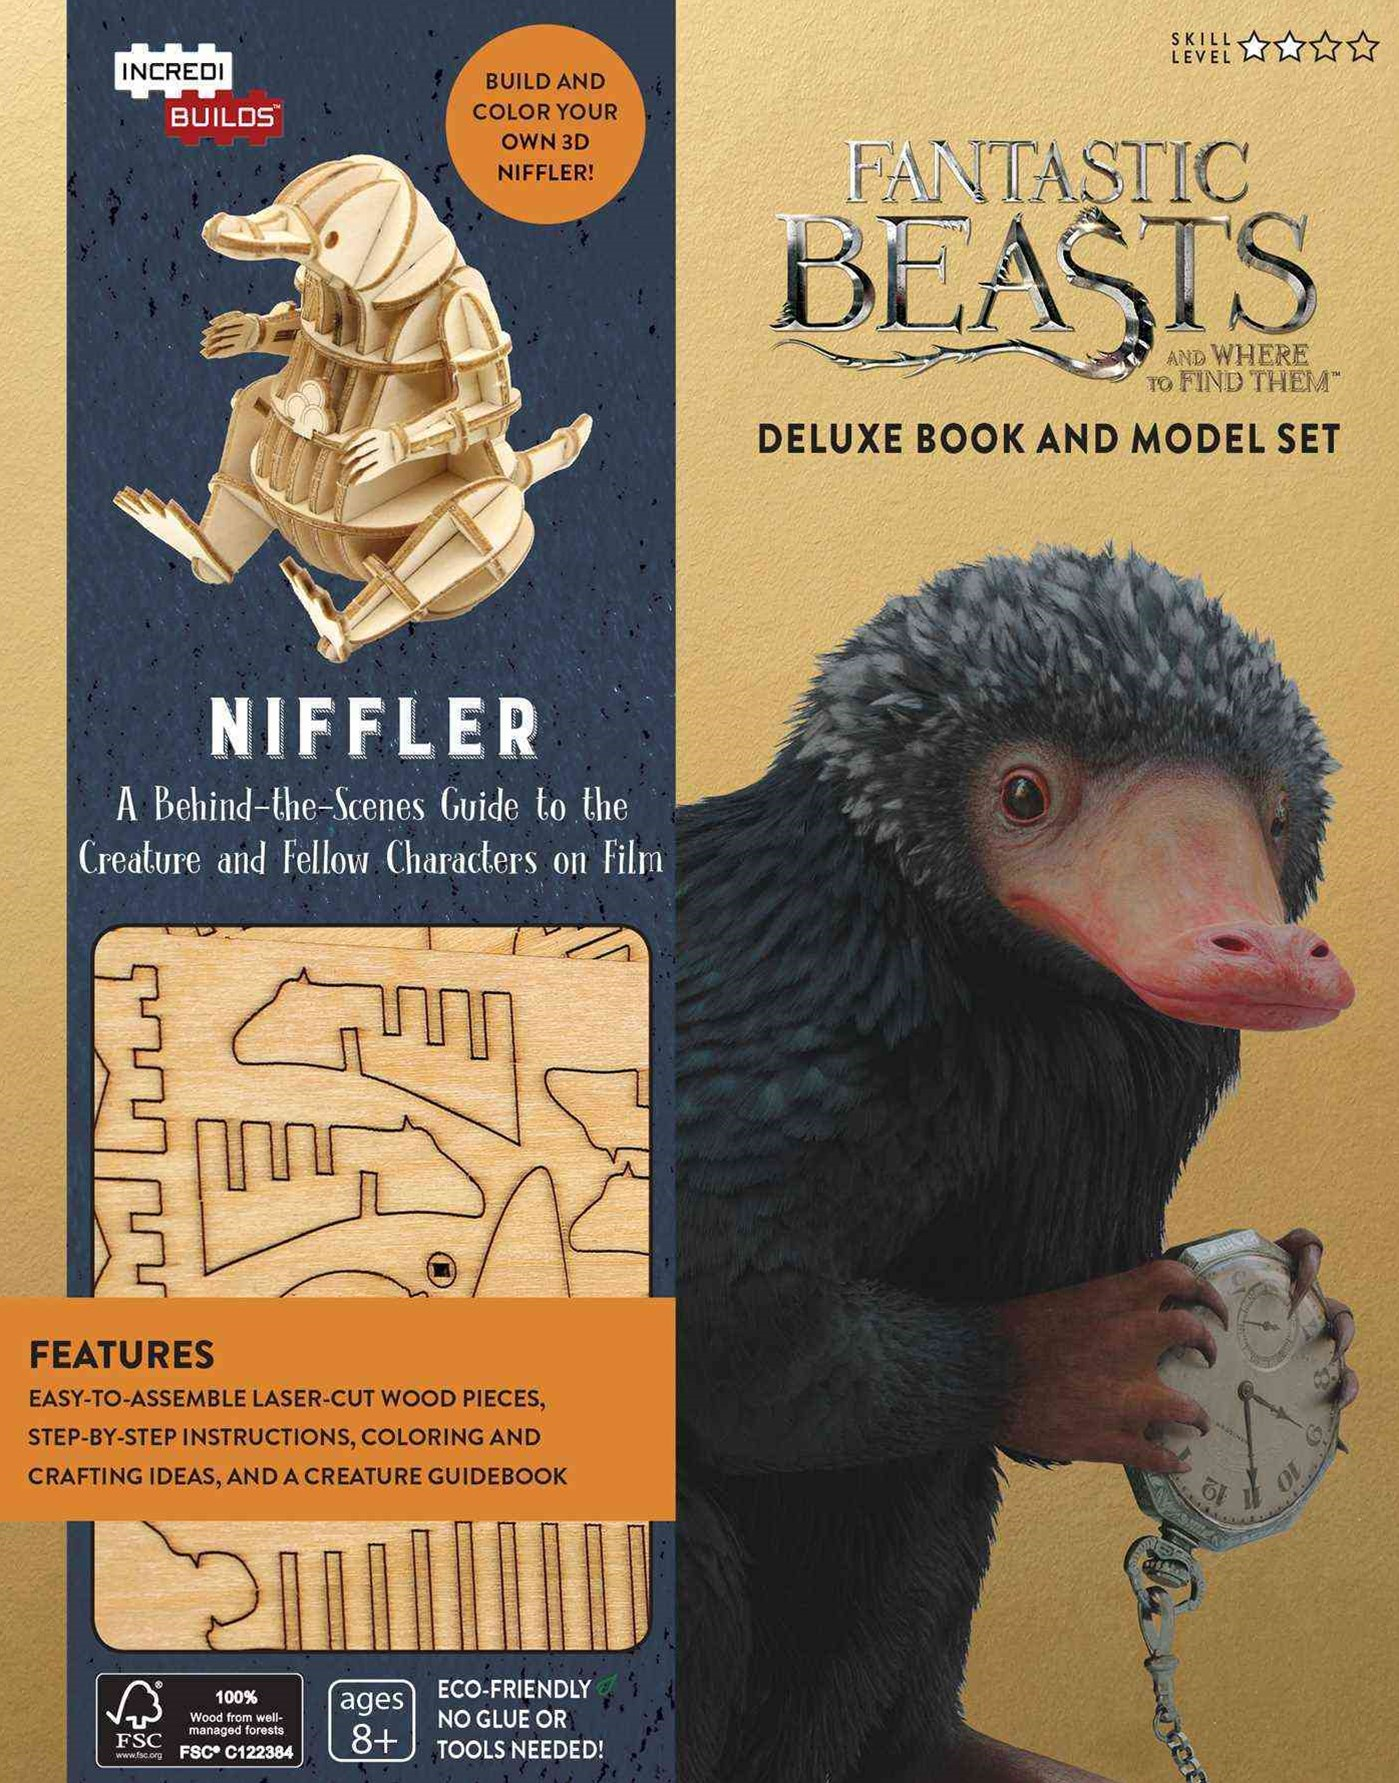 Incredibuilds: Fantastic Beasts and Wher